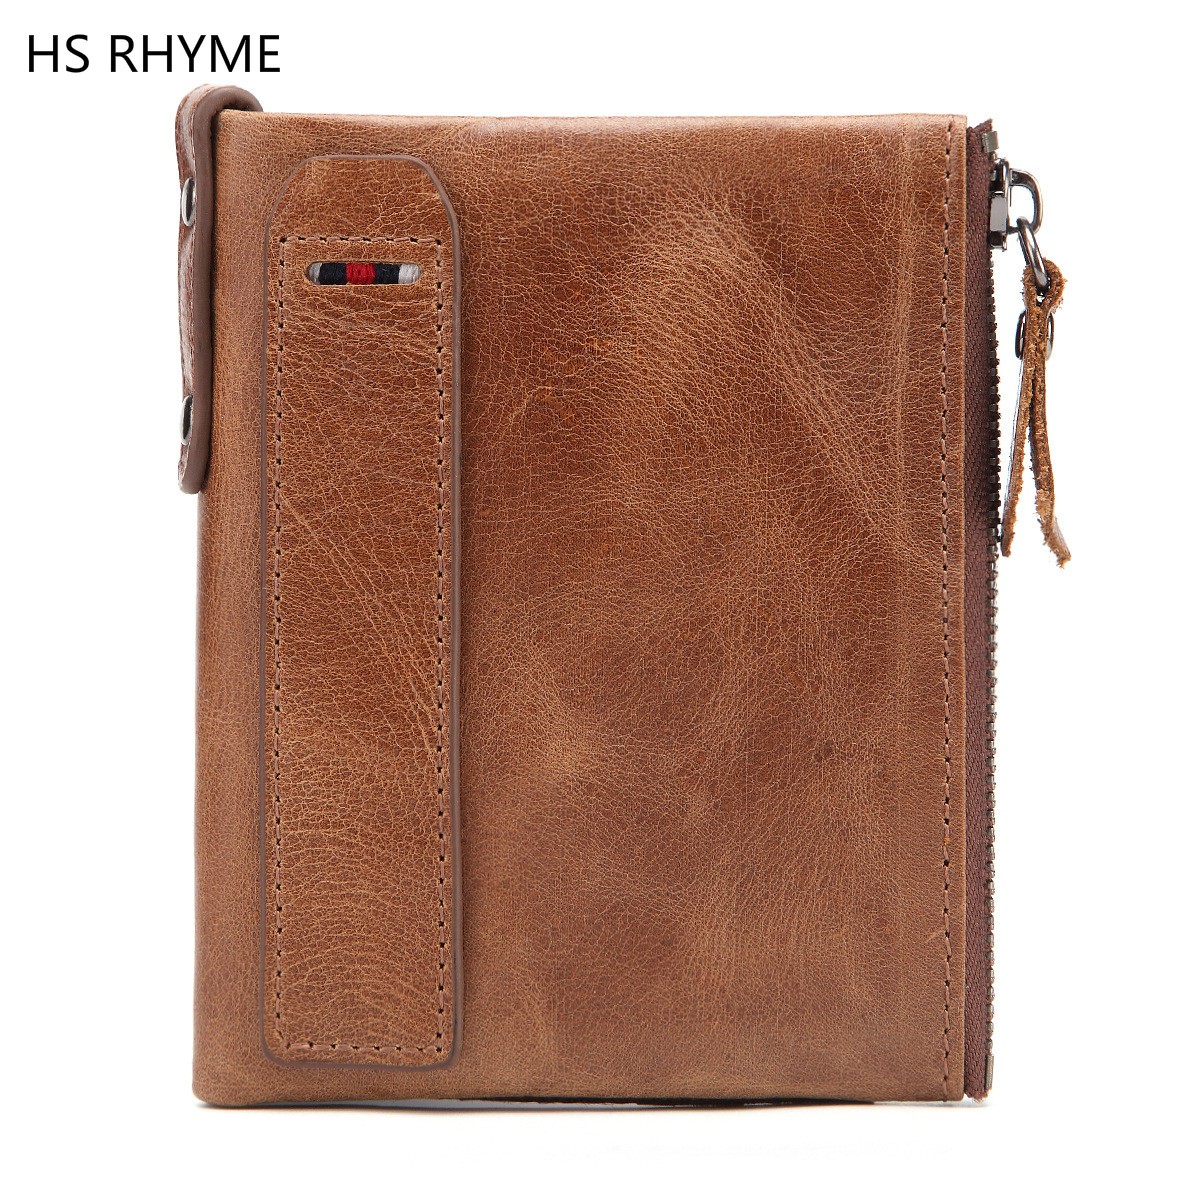 HS RHYME Wallet Men Leather Genuine Mens Bulls Man Vintage Cowhide Big Capacity Short Purse With Zipper Coin Pocket